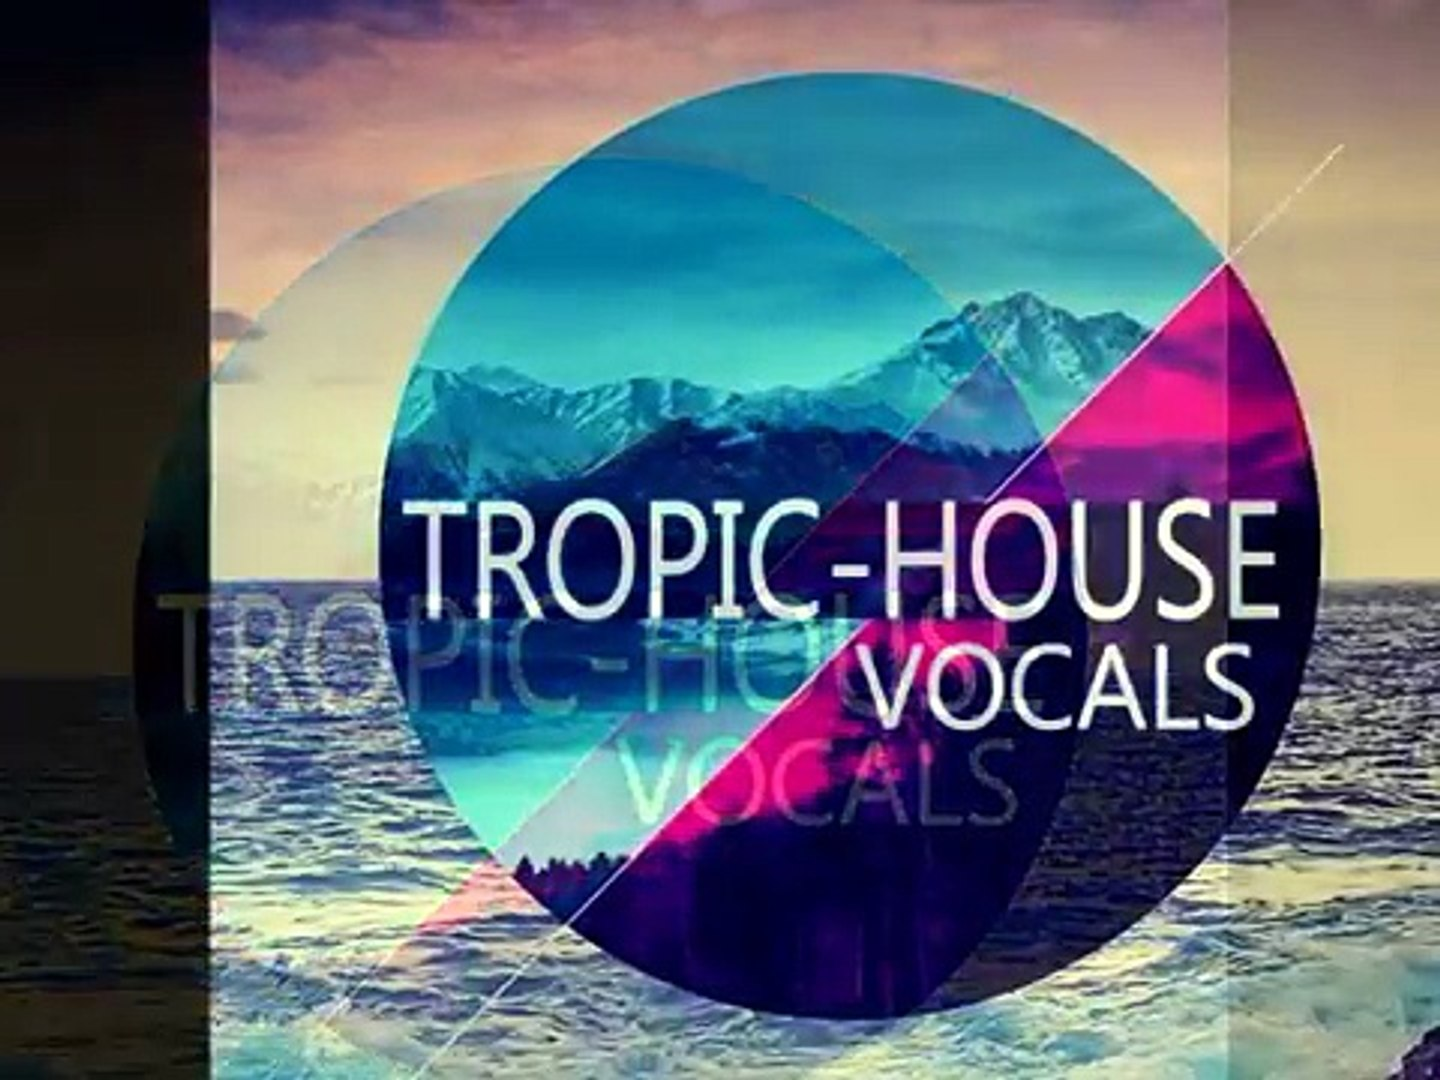 Tropical House Vocals - Acapellas & Spoken Phrases | Key and BPM-Labelled,  100% Royalty-Free